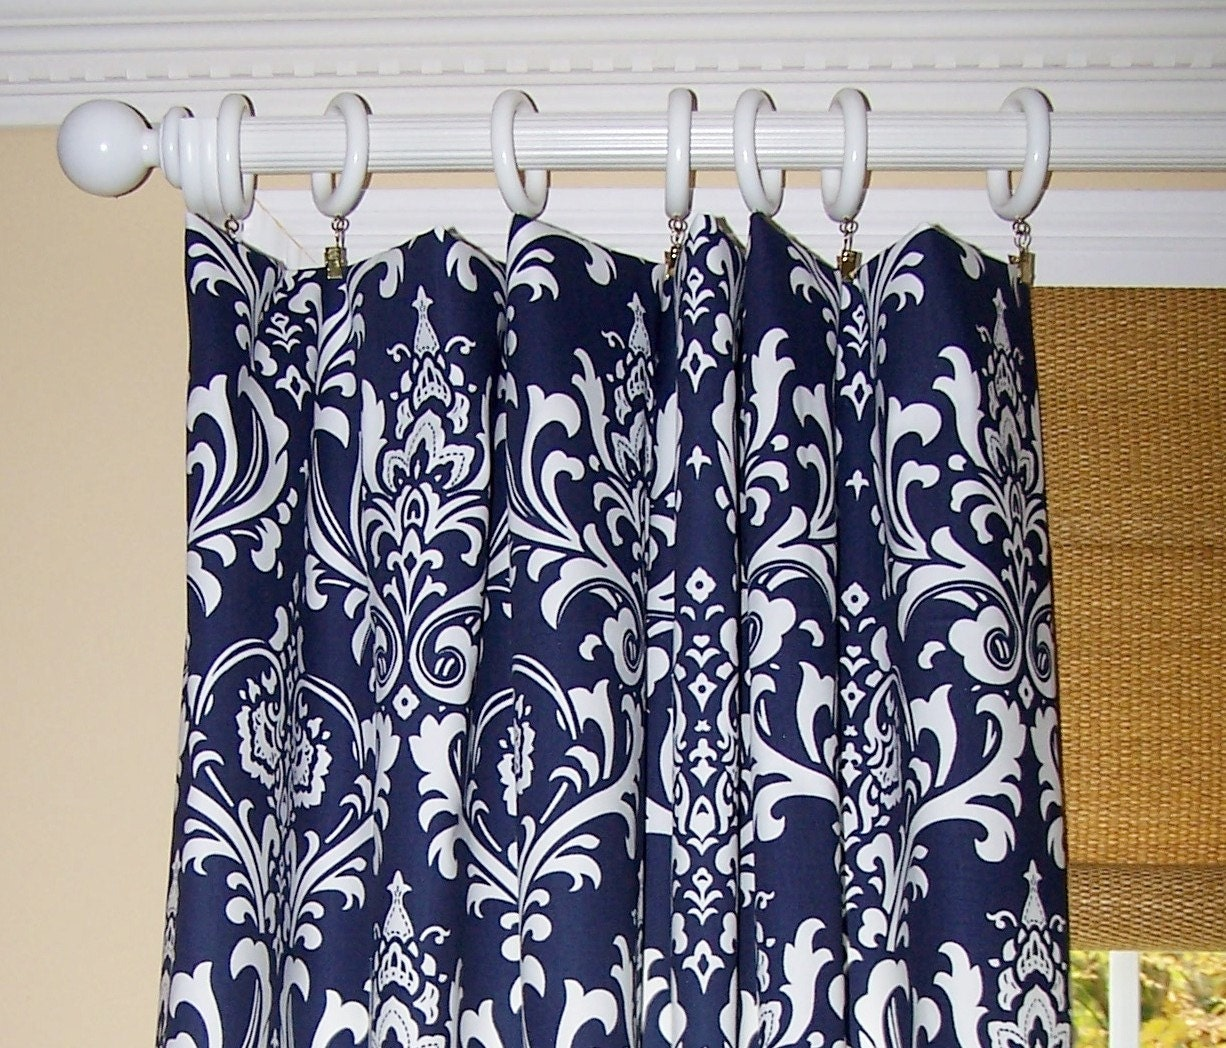 Dark green shower curtains - Lime Green Chevron Curtains Roman Curtain Styles Bright Fabric Shower Curtains Navy Blue And White